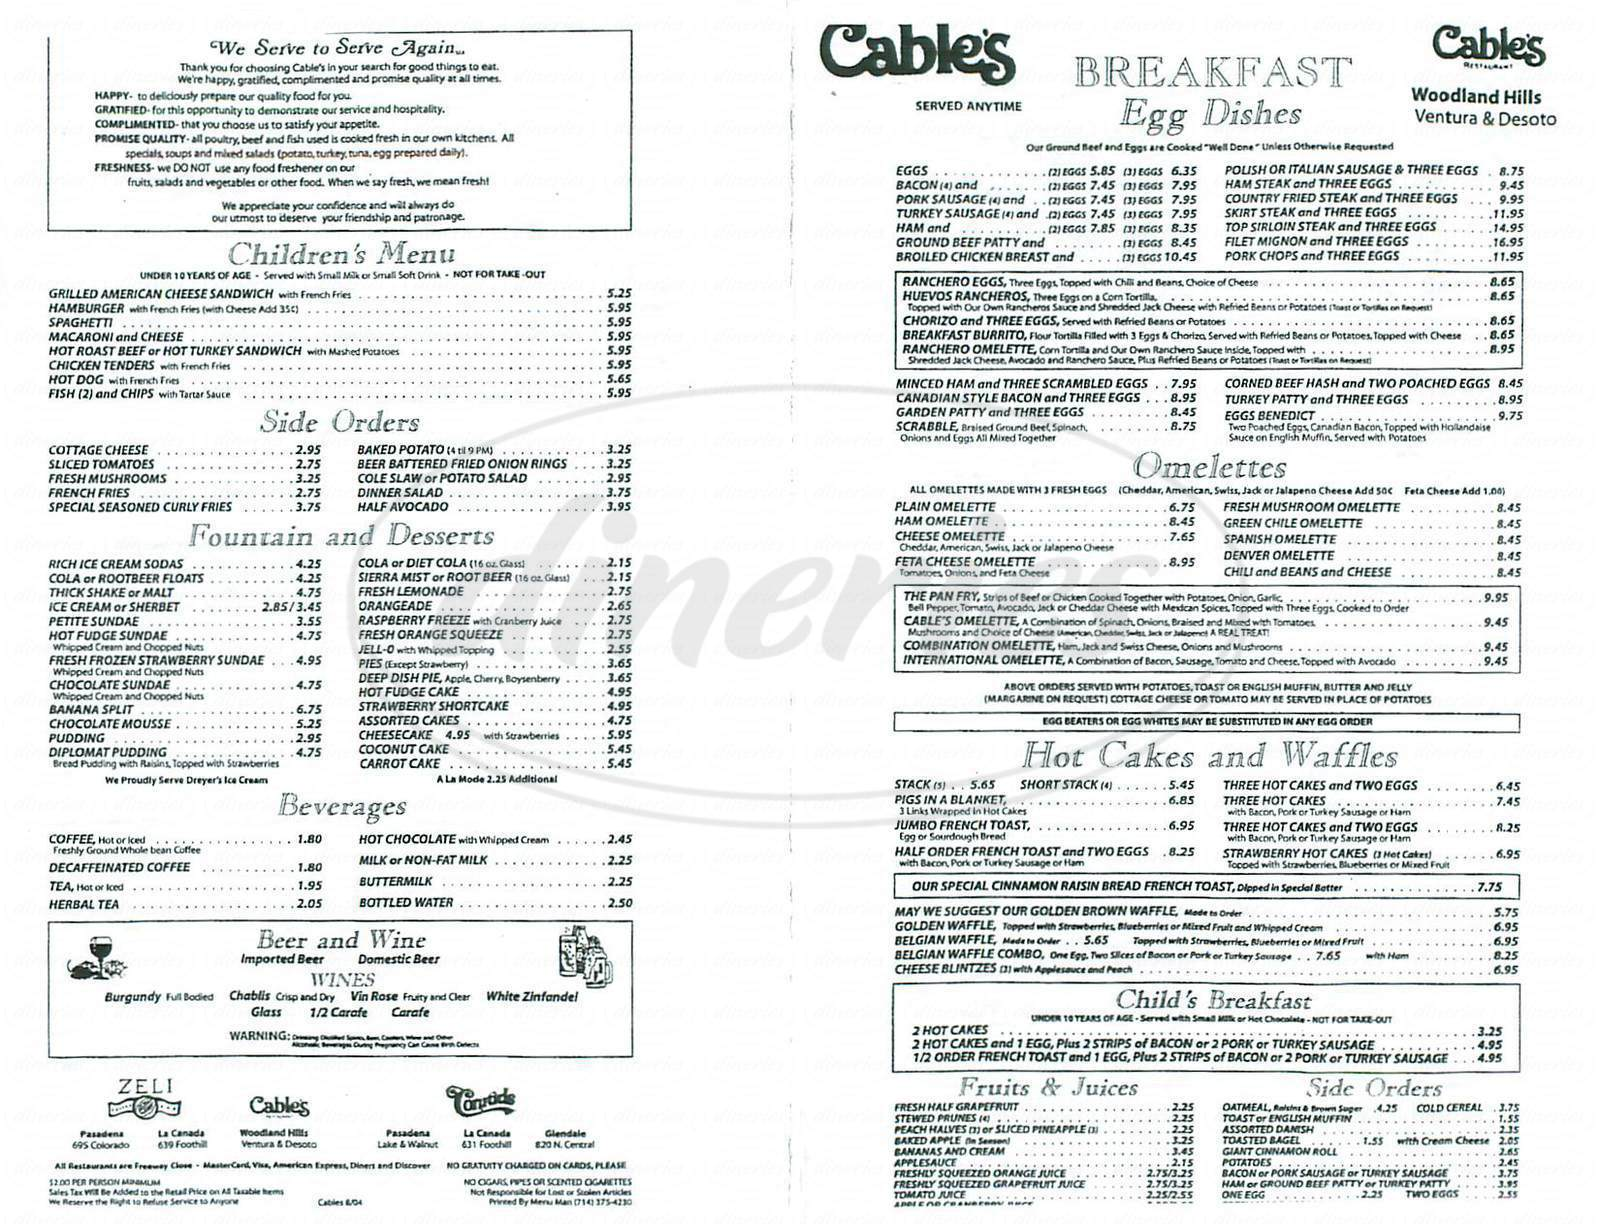 menu for Cables Restaurant